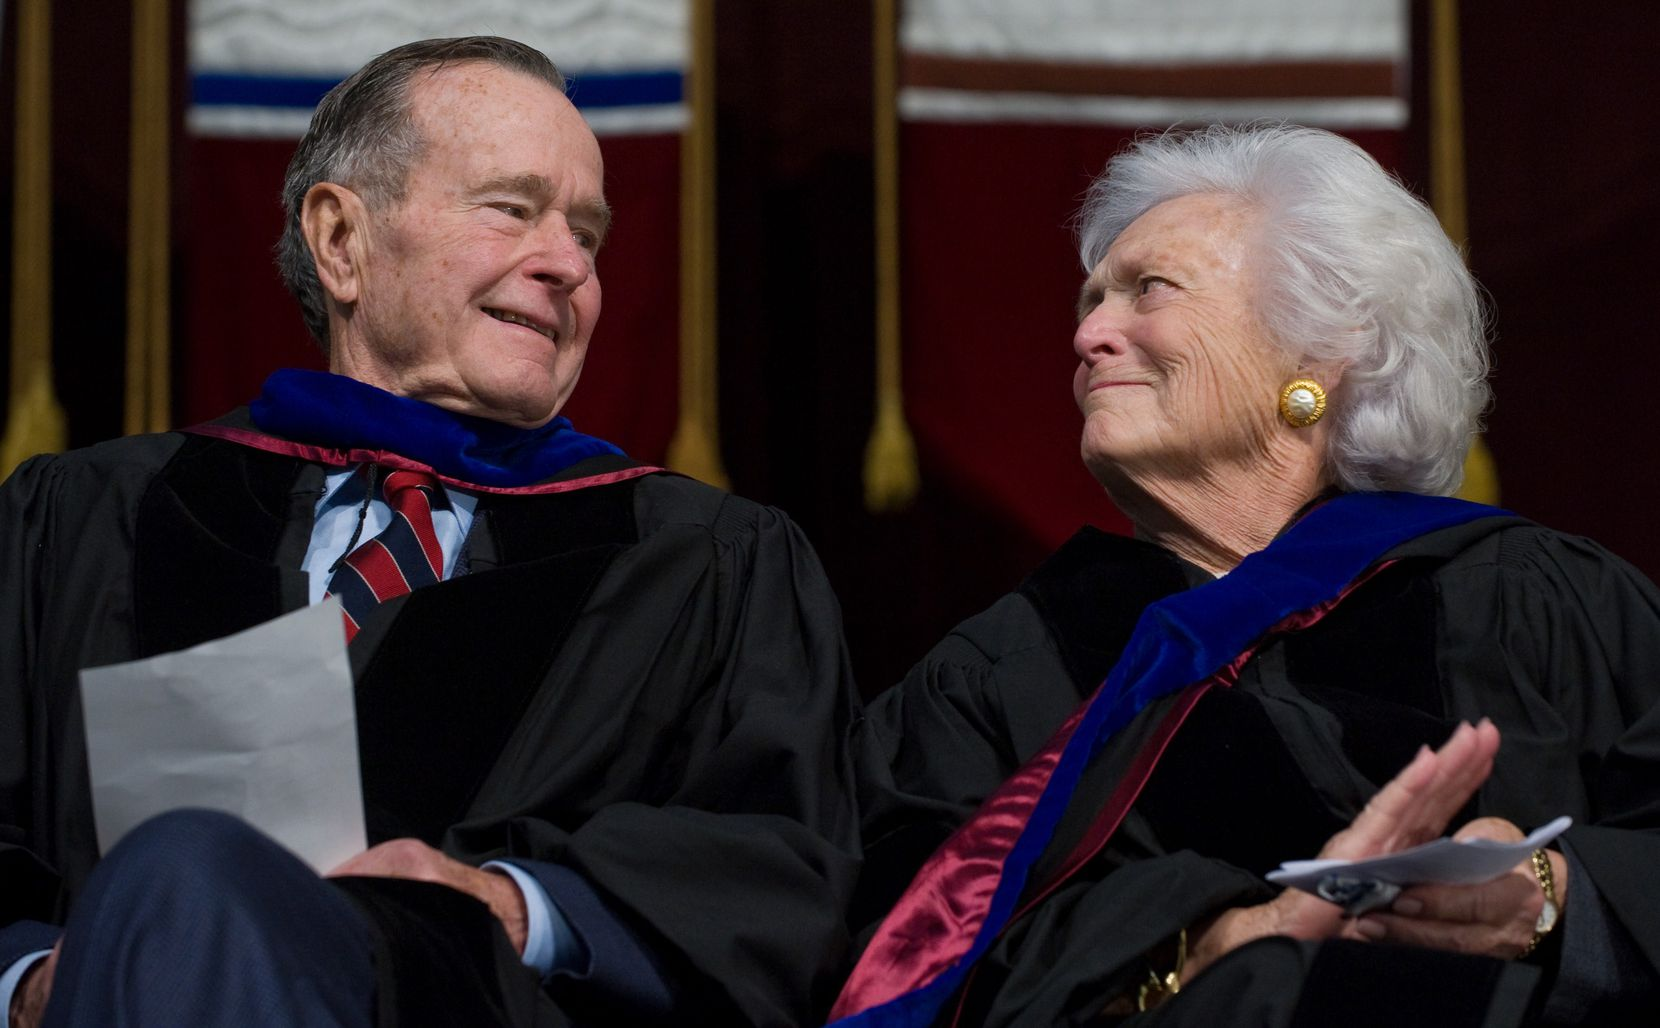 2008: Former President George H.W. Bush and Barbara Bush listen as their son, President George W. Bush, delivers the commencement address during the Texas A&M University graduation ceremony in College Station.